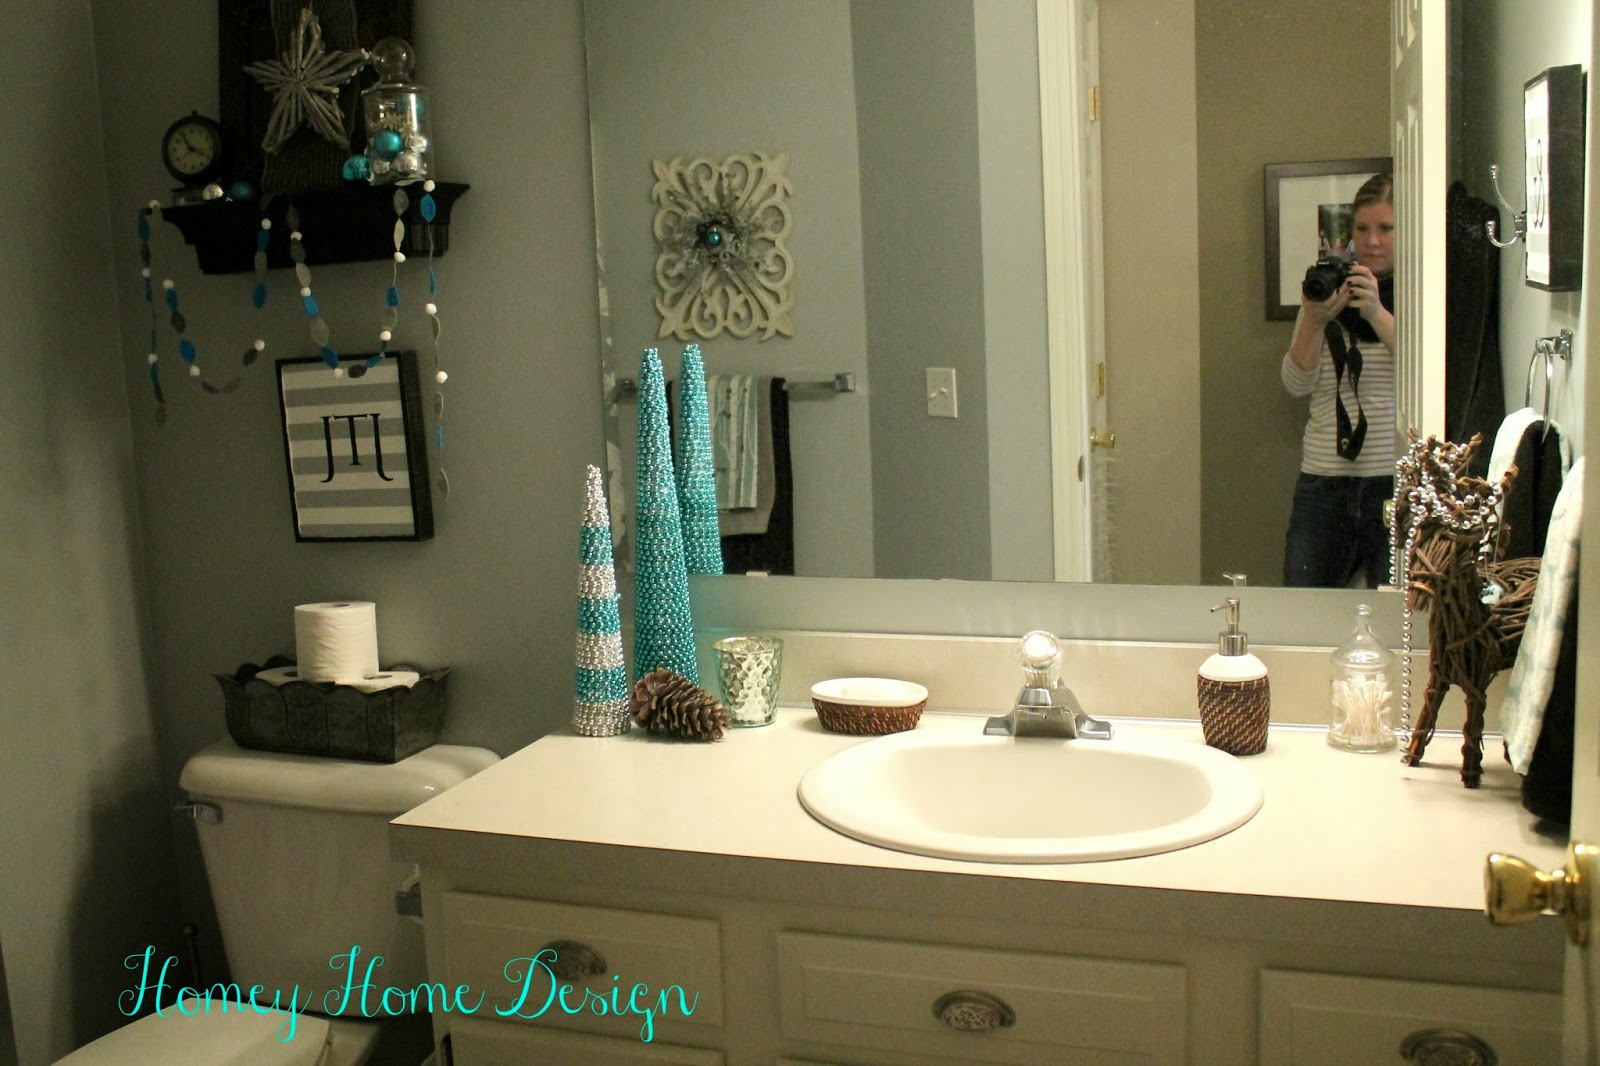 Homey home design bathroom christmas ideas for Bathroom theme ideas